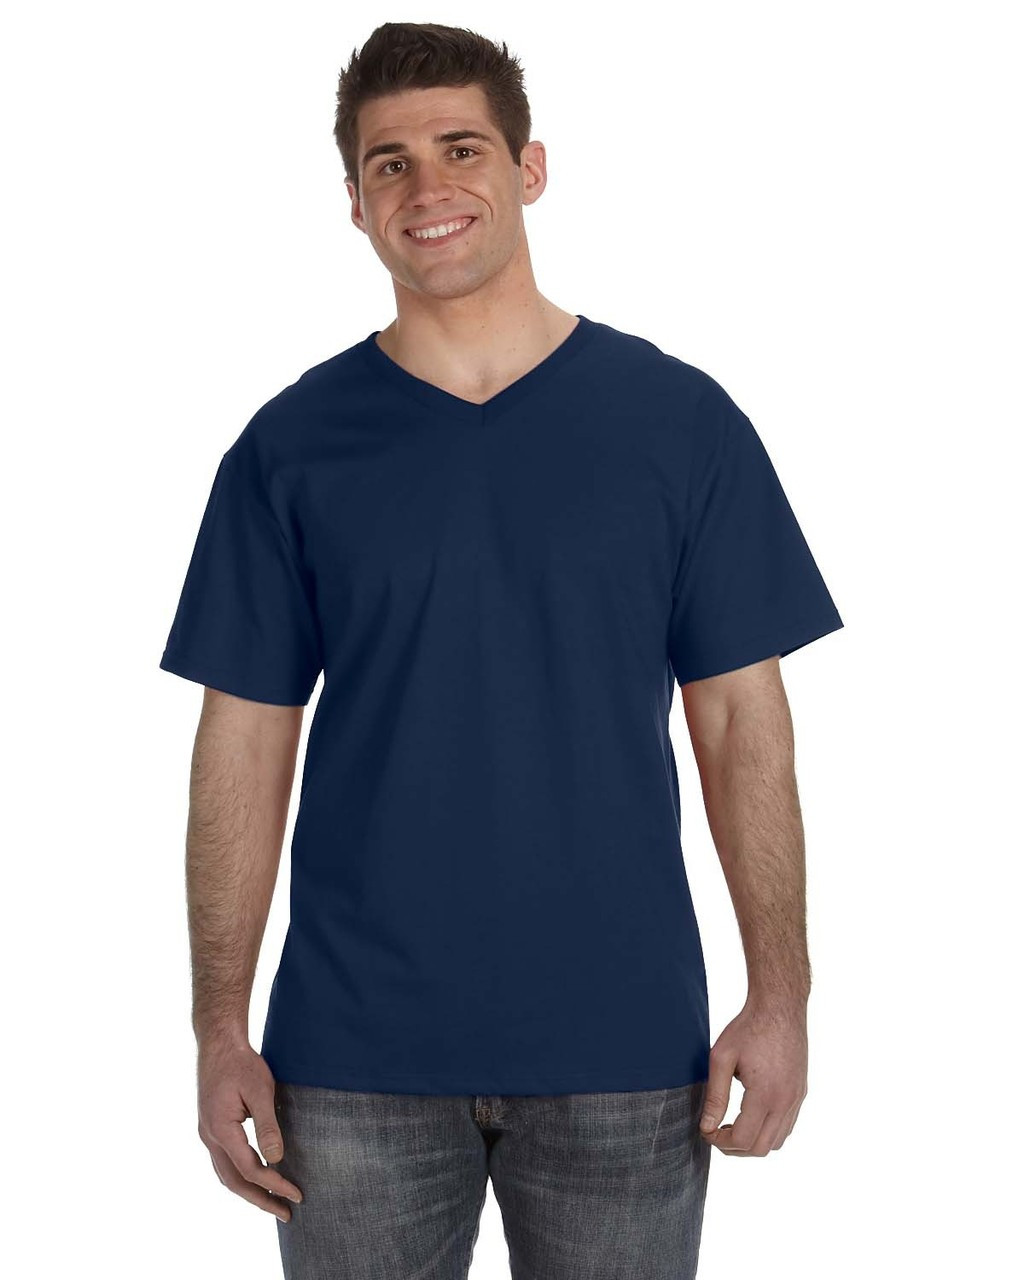 J. Navy - 39VR Fruit of the Loom 100% Heavy Cotton HD® V-Neck T-Shirt | Blankclothing.ca